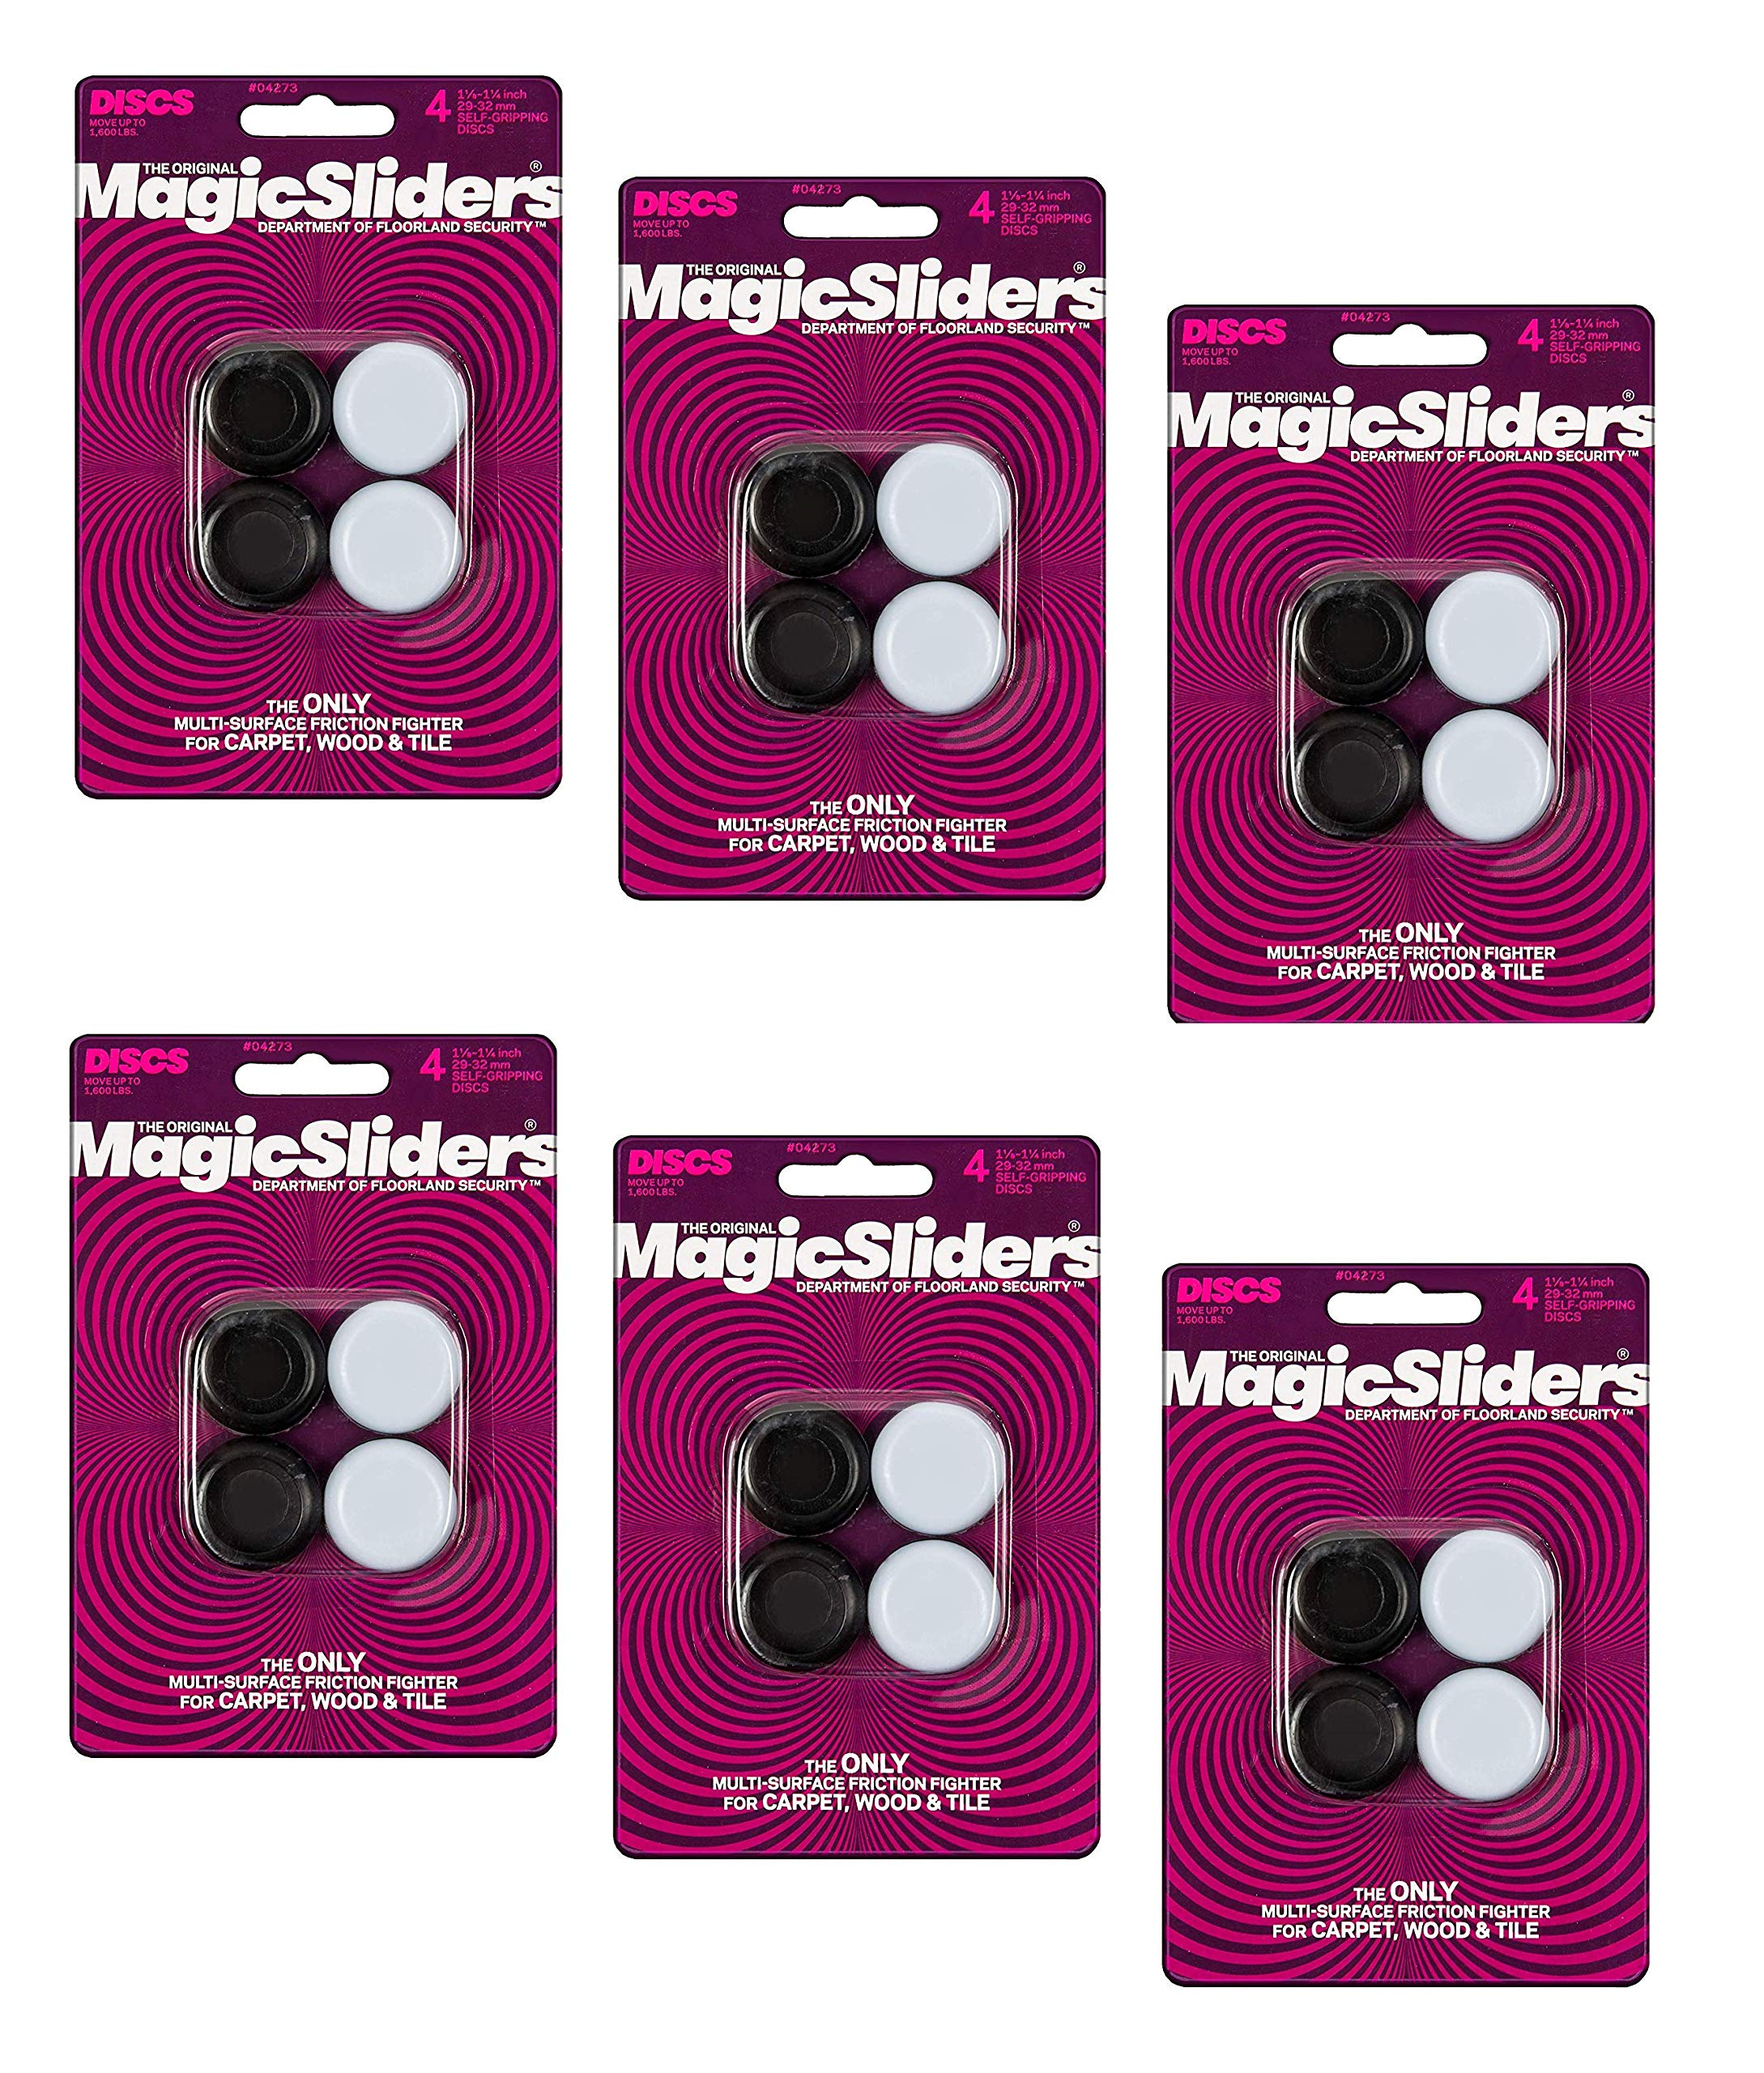 MAGIC SLIDERS L P 4273 1-1/4'' RND Slider, Sold as 6 Pack, 24 Count Total